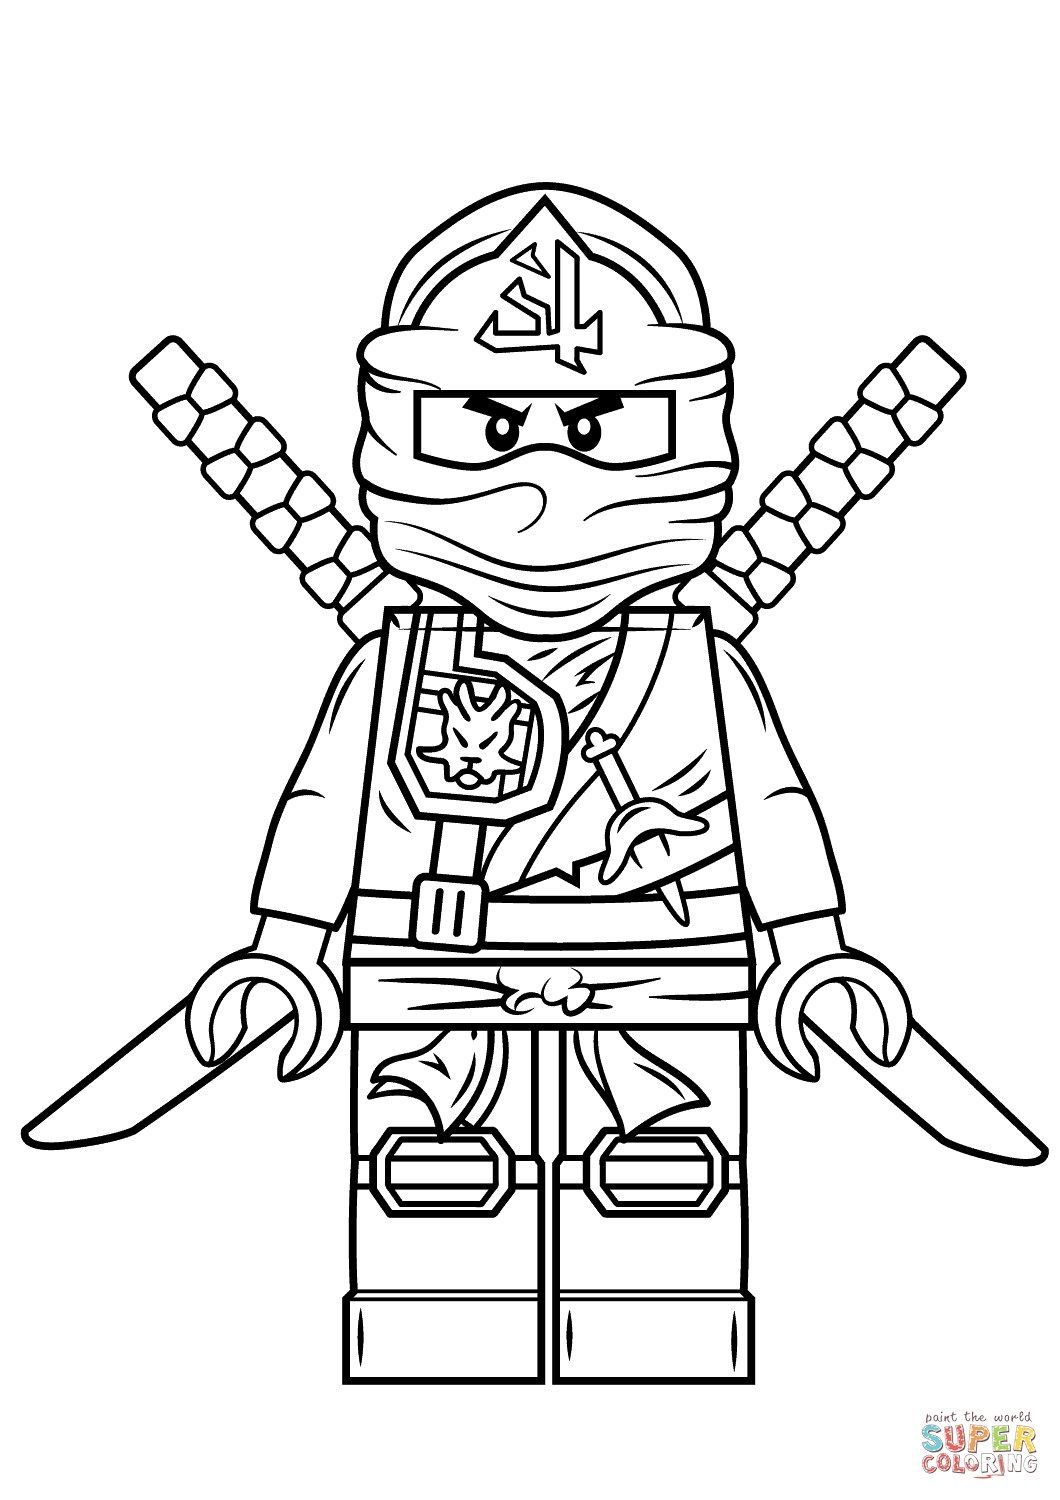 Elegant Image Of Ninja Coloring Page Lego Coloring Pages